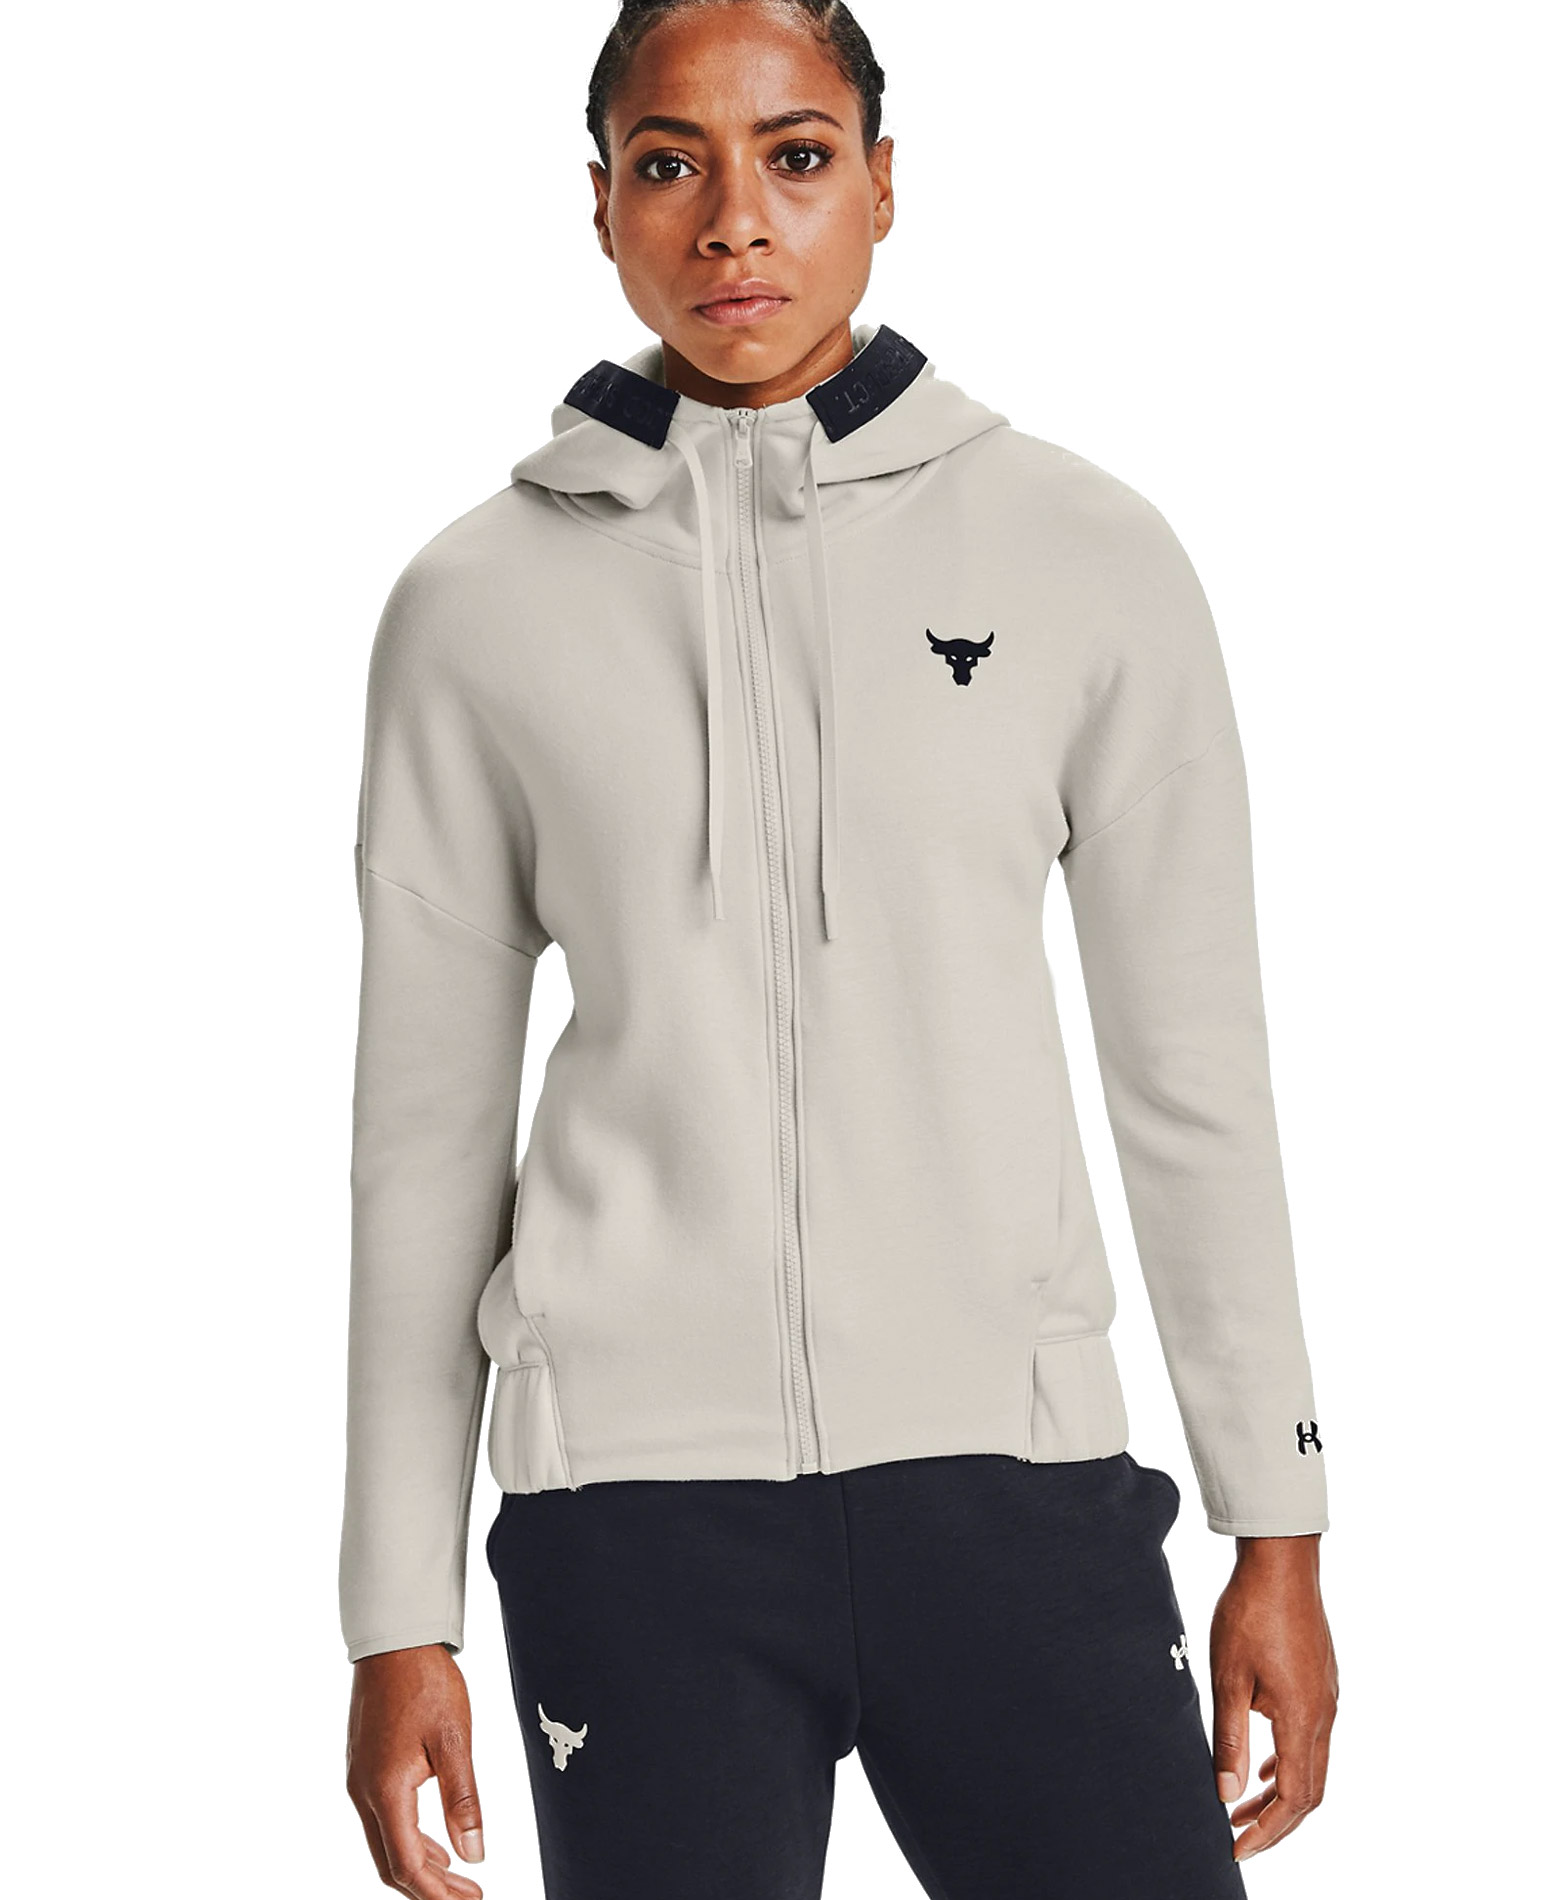 UNDER ARMOUR PROJECT ROCK CC FLEECE FZ SWEAT JACKET 1356958-110 Εκρού